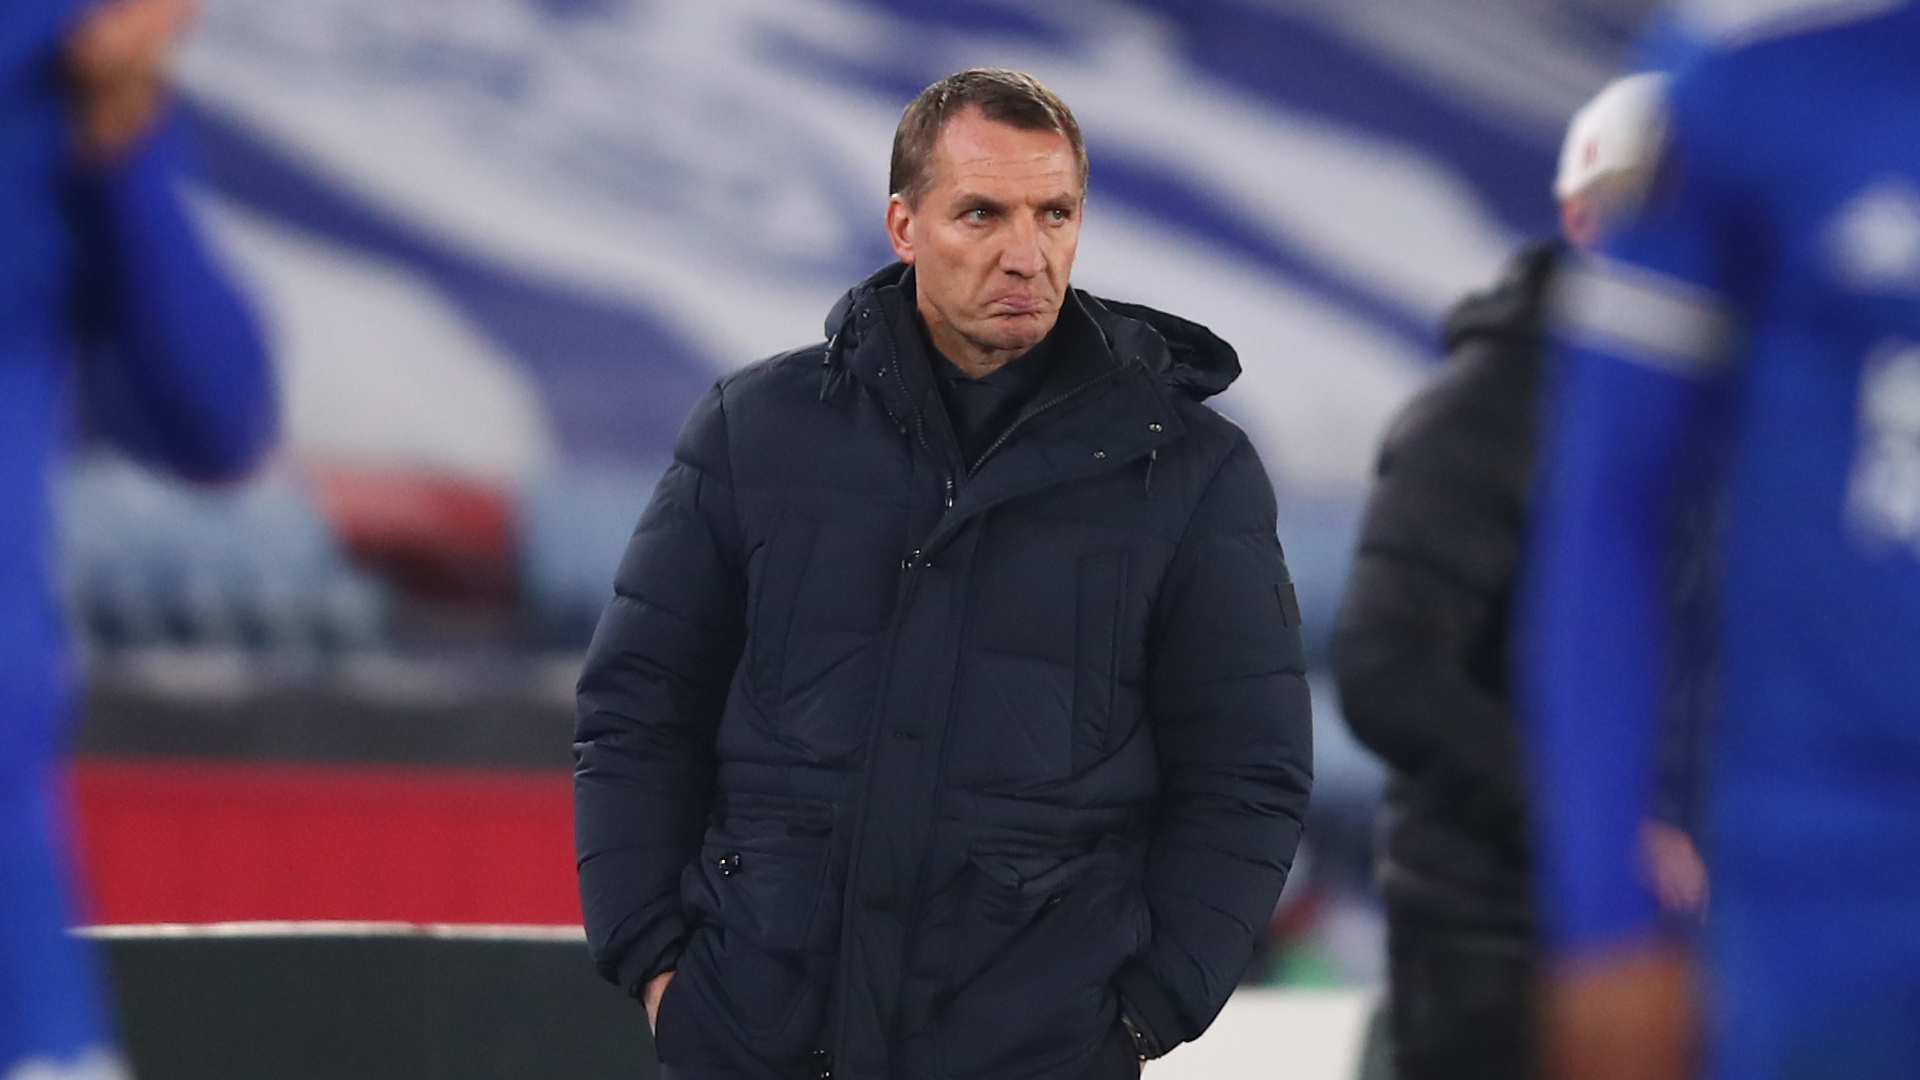 Rodgers blames lack of intensity as Europa League knockout woes continue